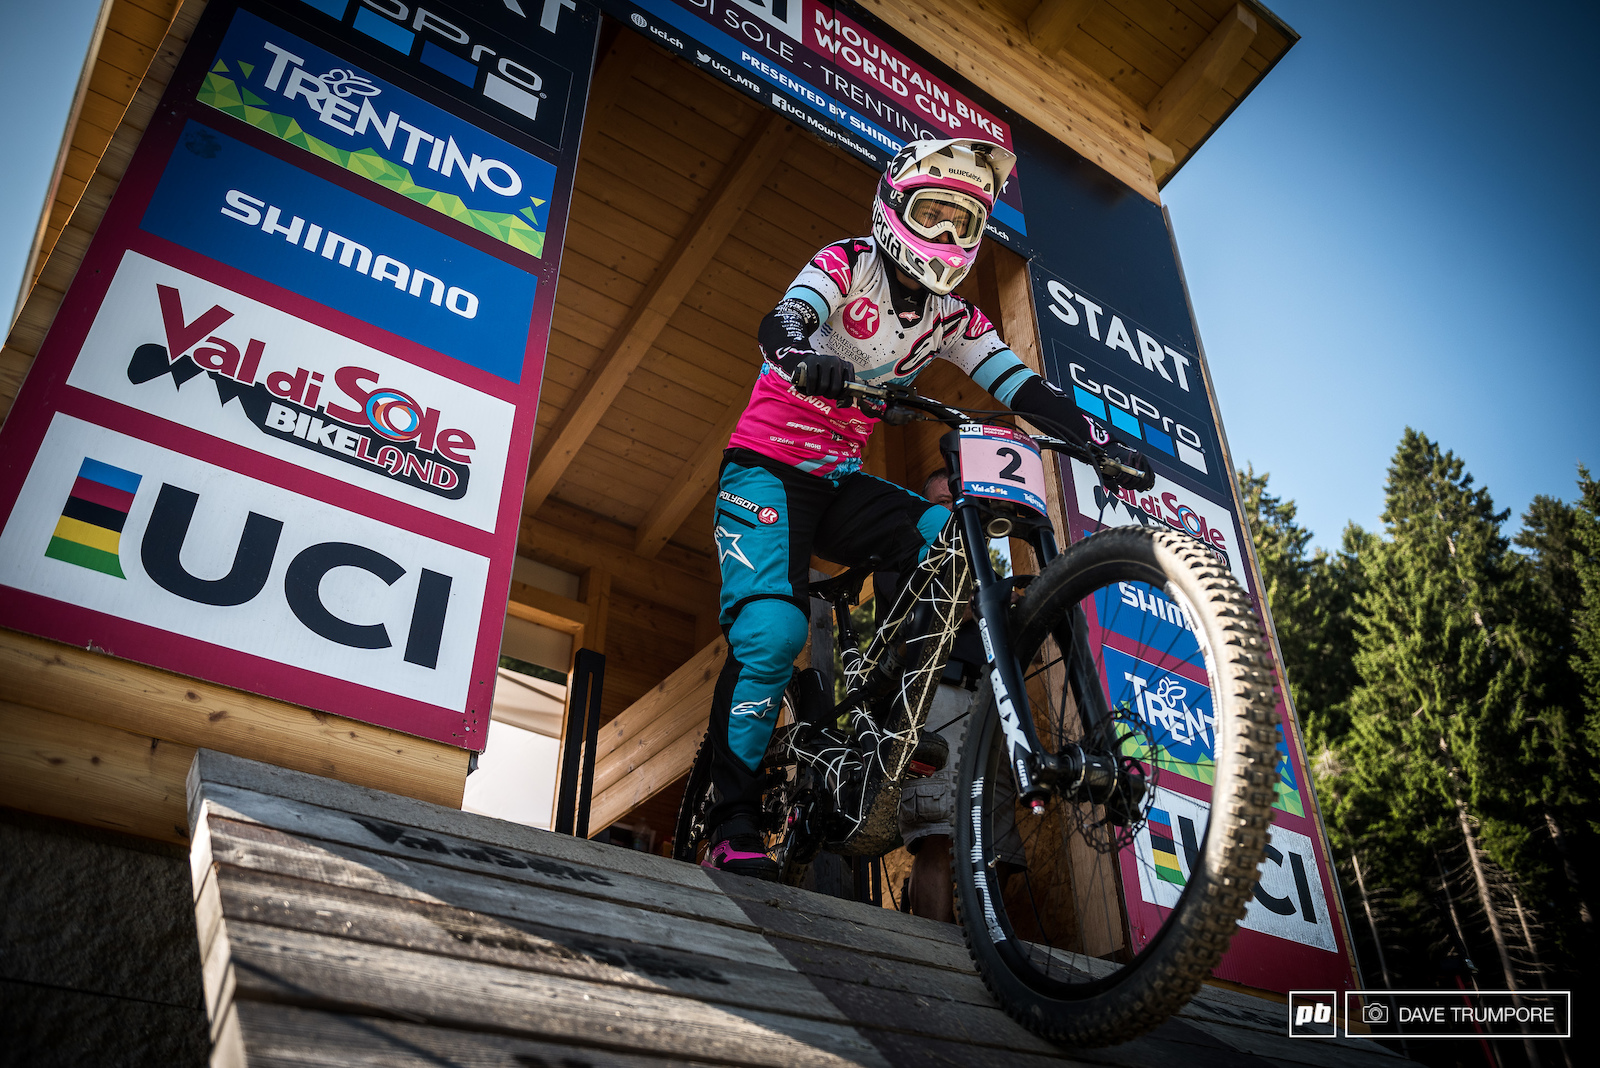 Tracey Hannah drops in to get things going in Val di Sole for World Cup Finals.